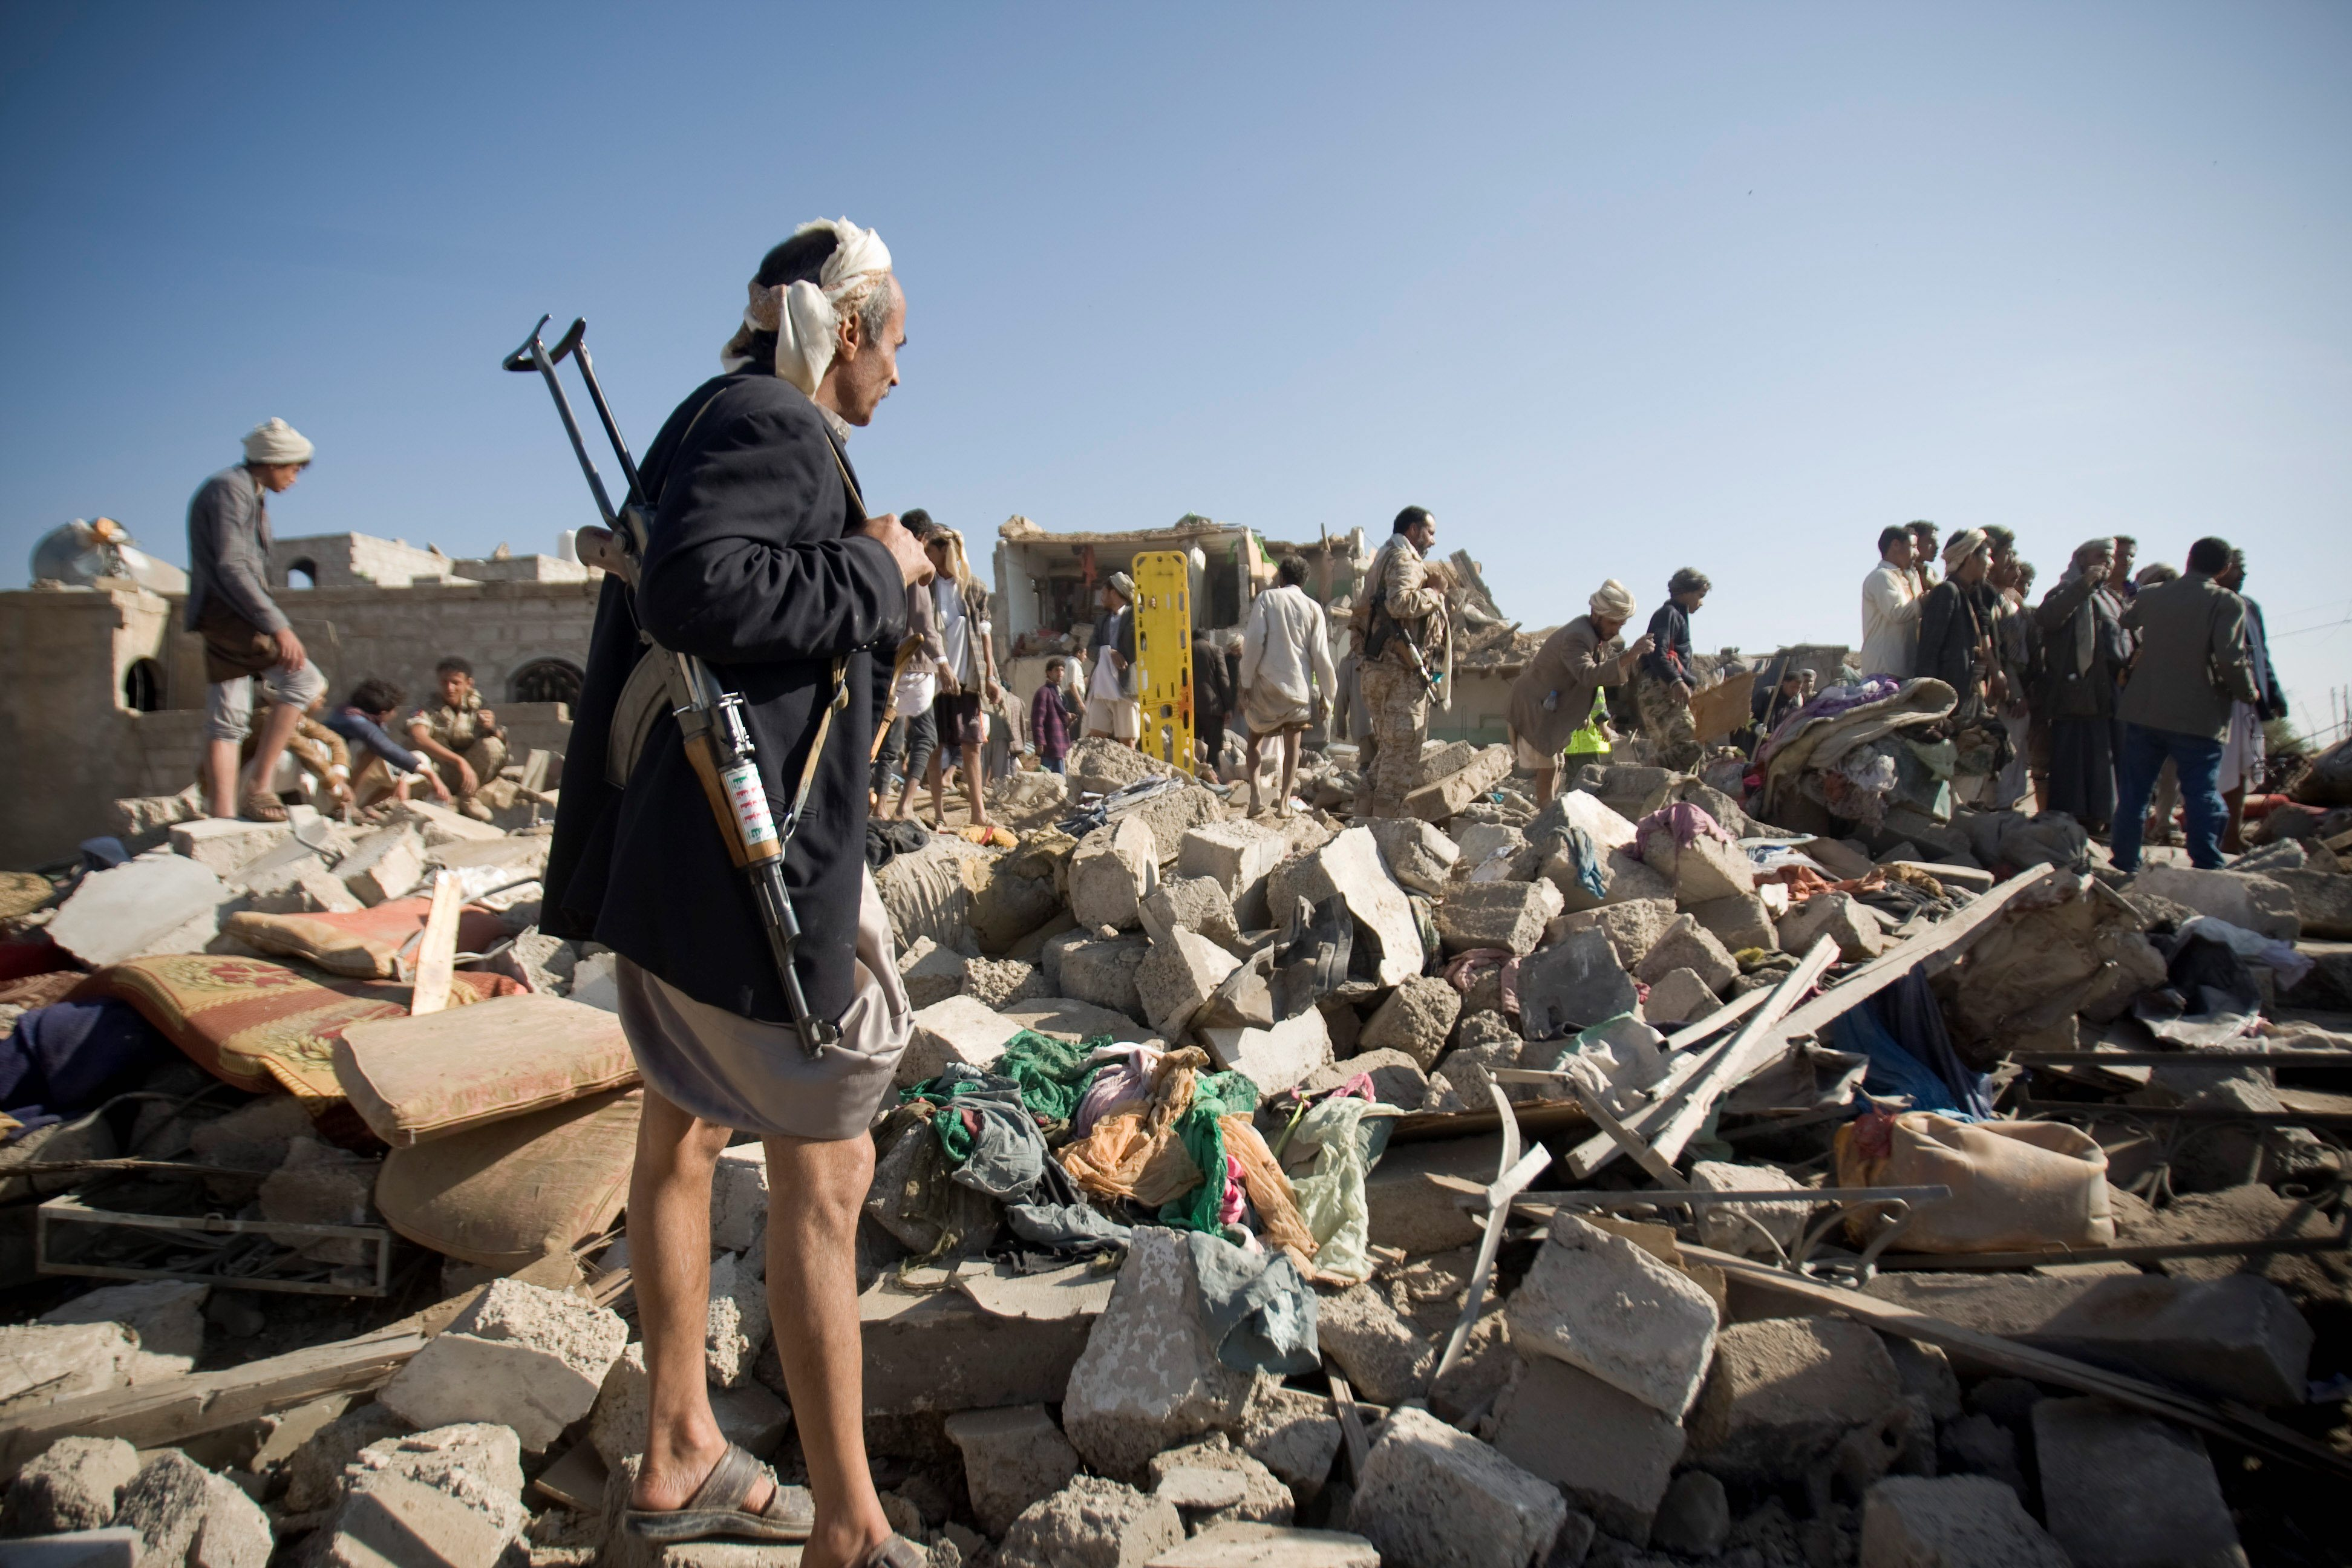 Yemen crisis threatens Obama Iran nuclear talks, further clouds Middle East policy - Washington Times